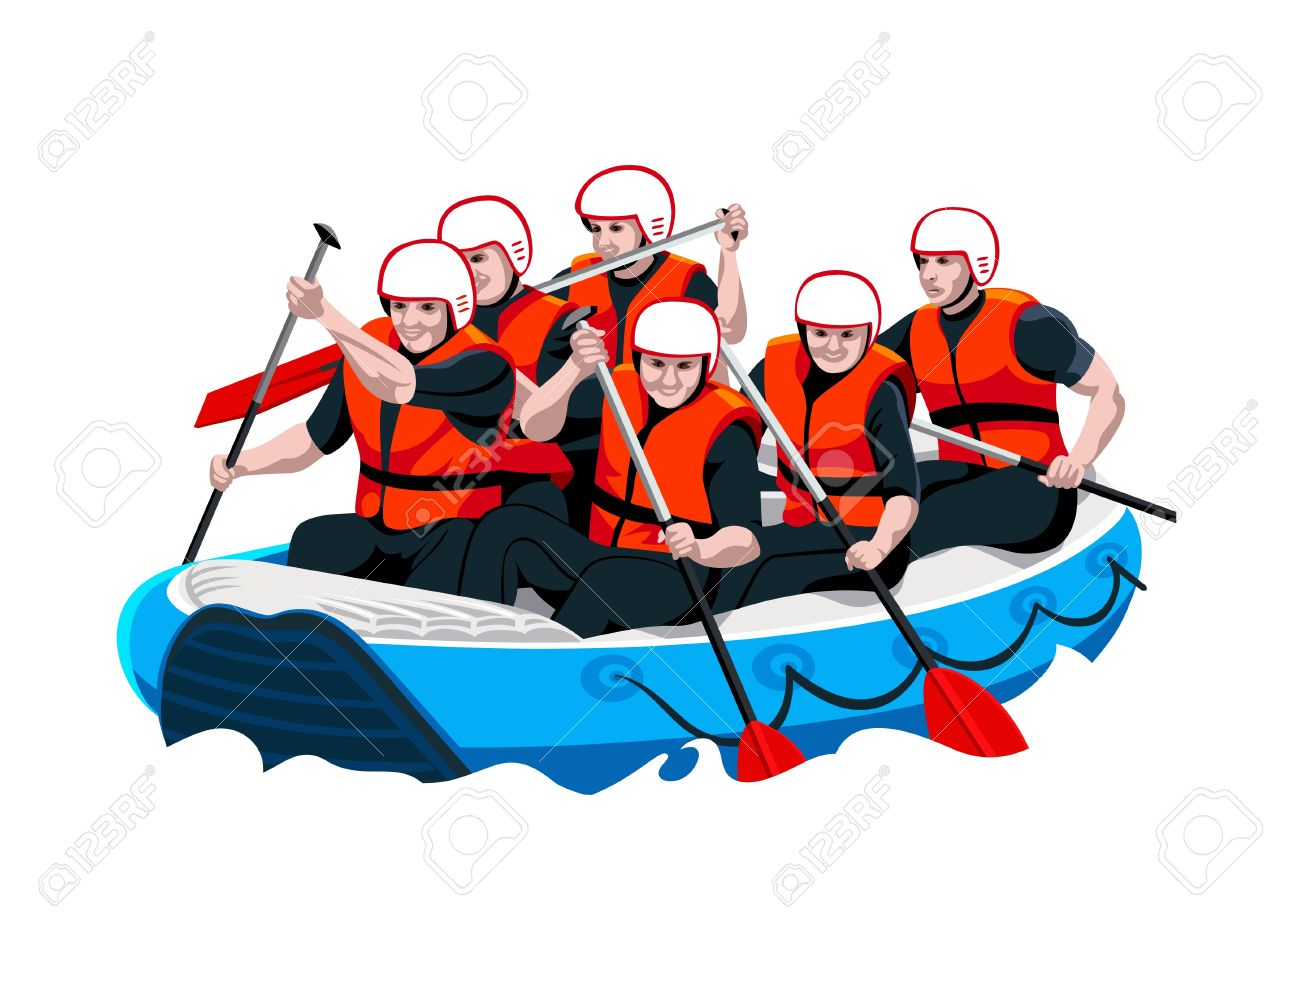 151 Rowing Teamwork Stock Vector Illustration And Royalty Free.